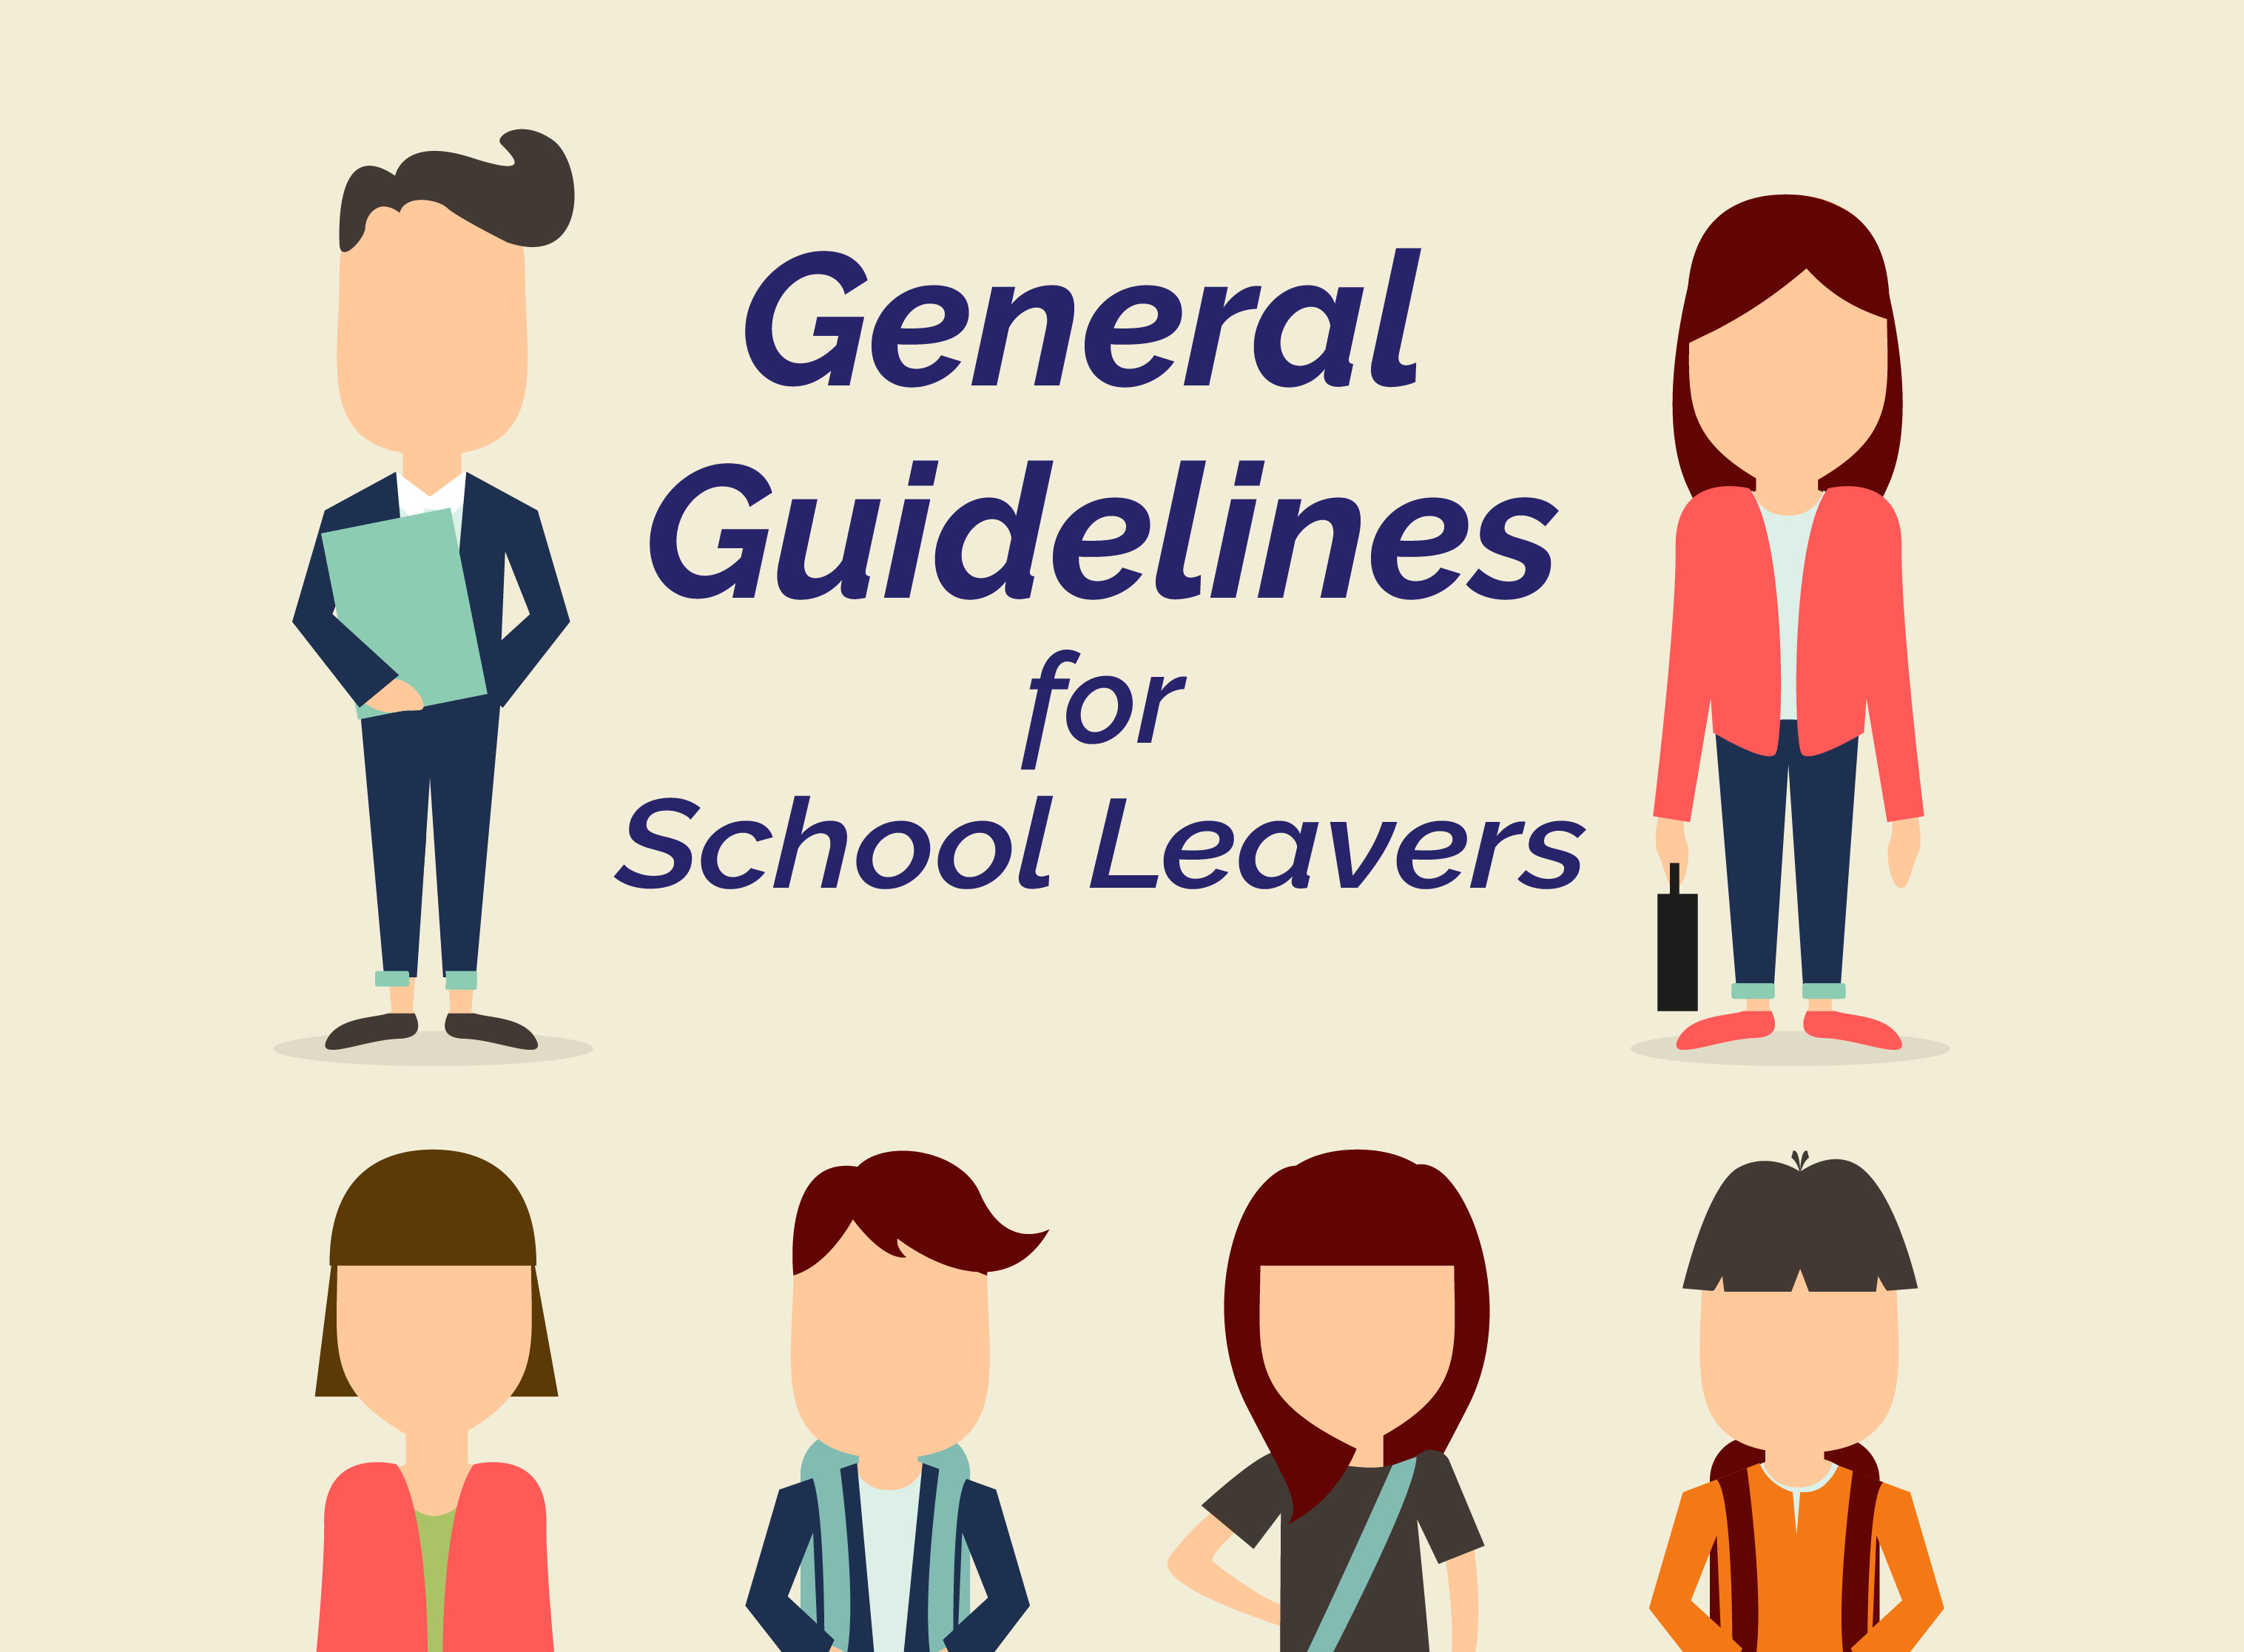 General guidelines for school leavers